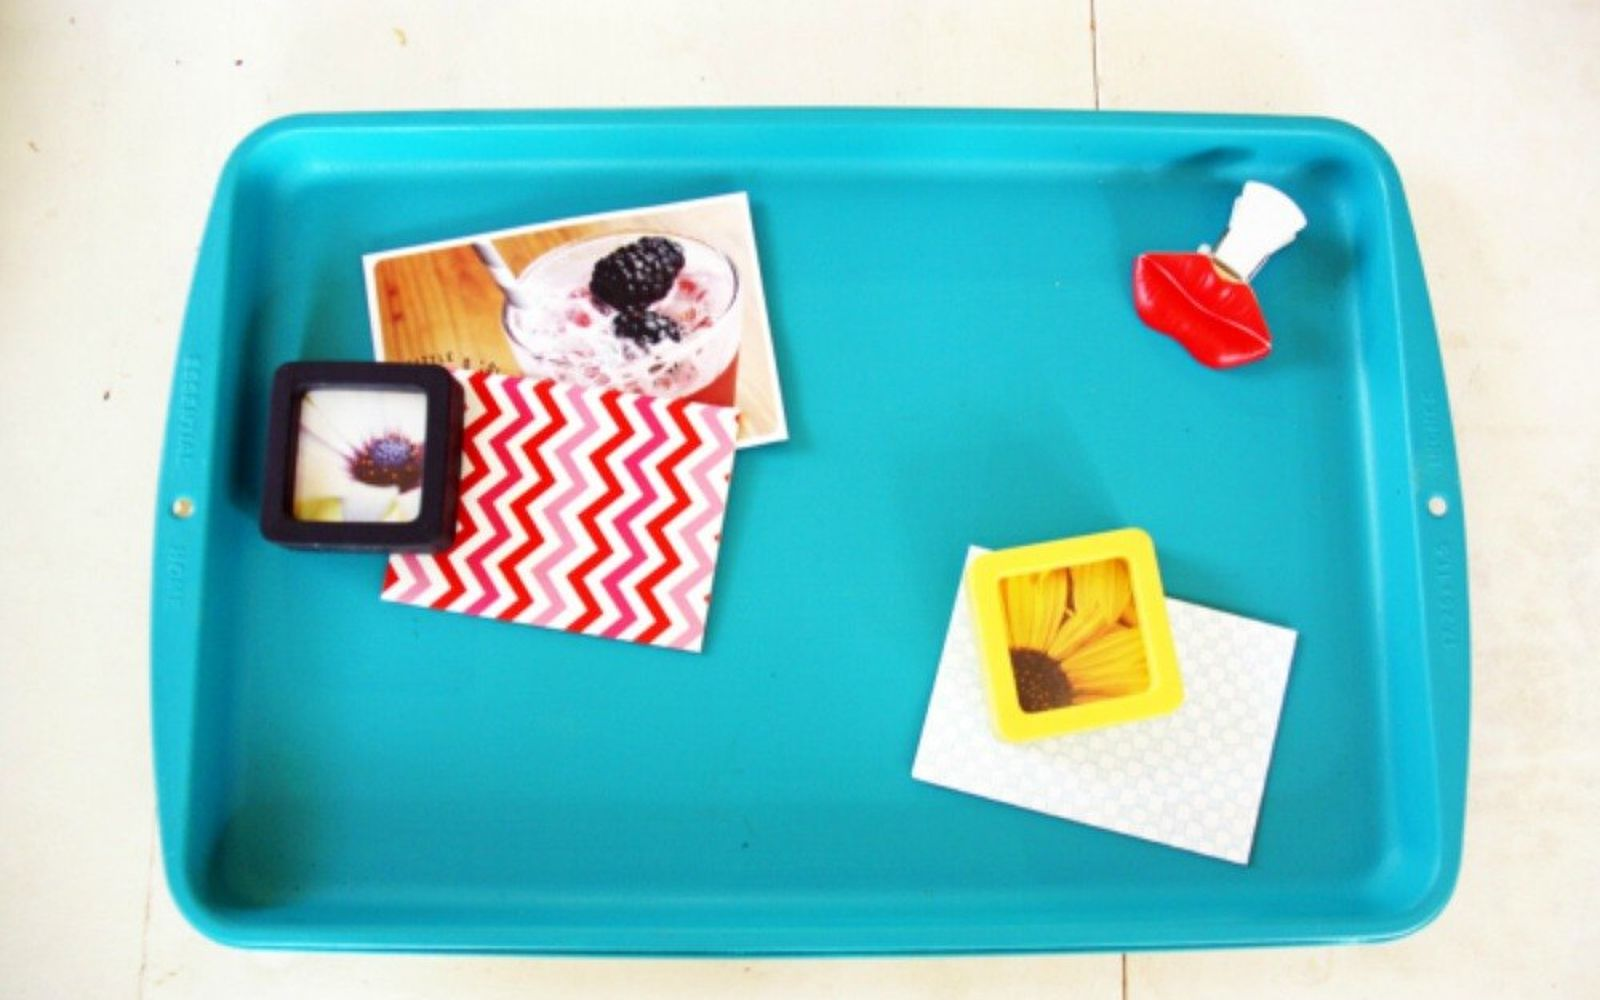 s hold onto your magnets for these 16 ingenious ideas, Alter them into a memory board